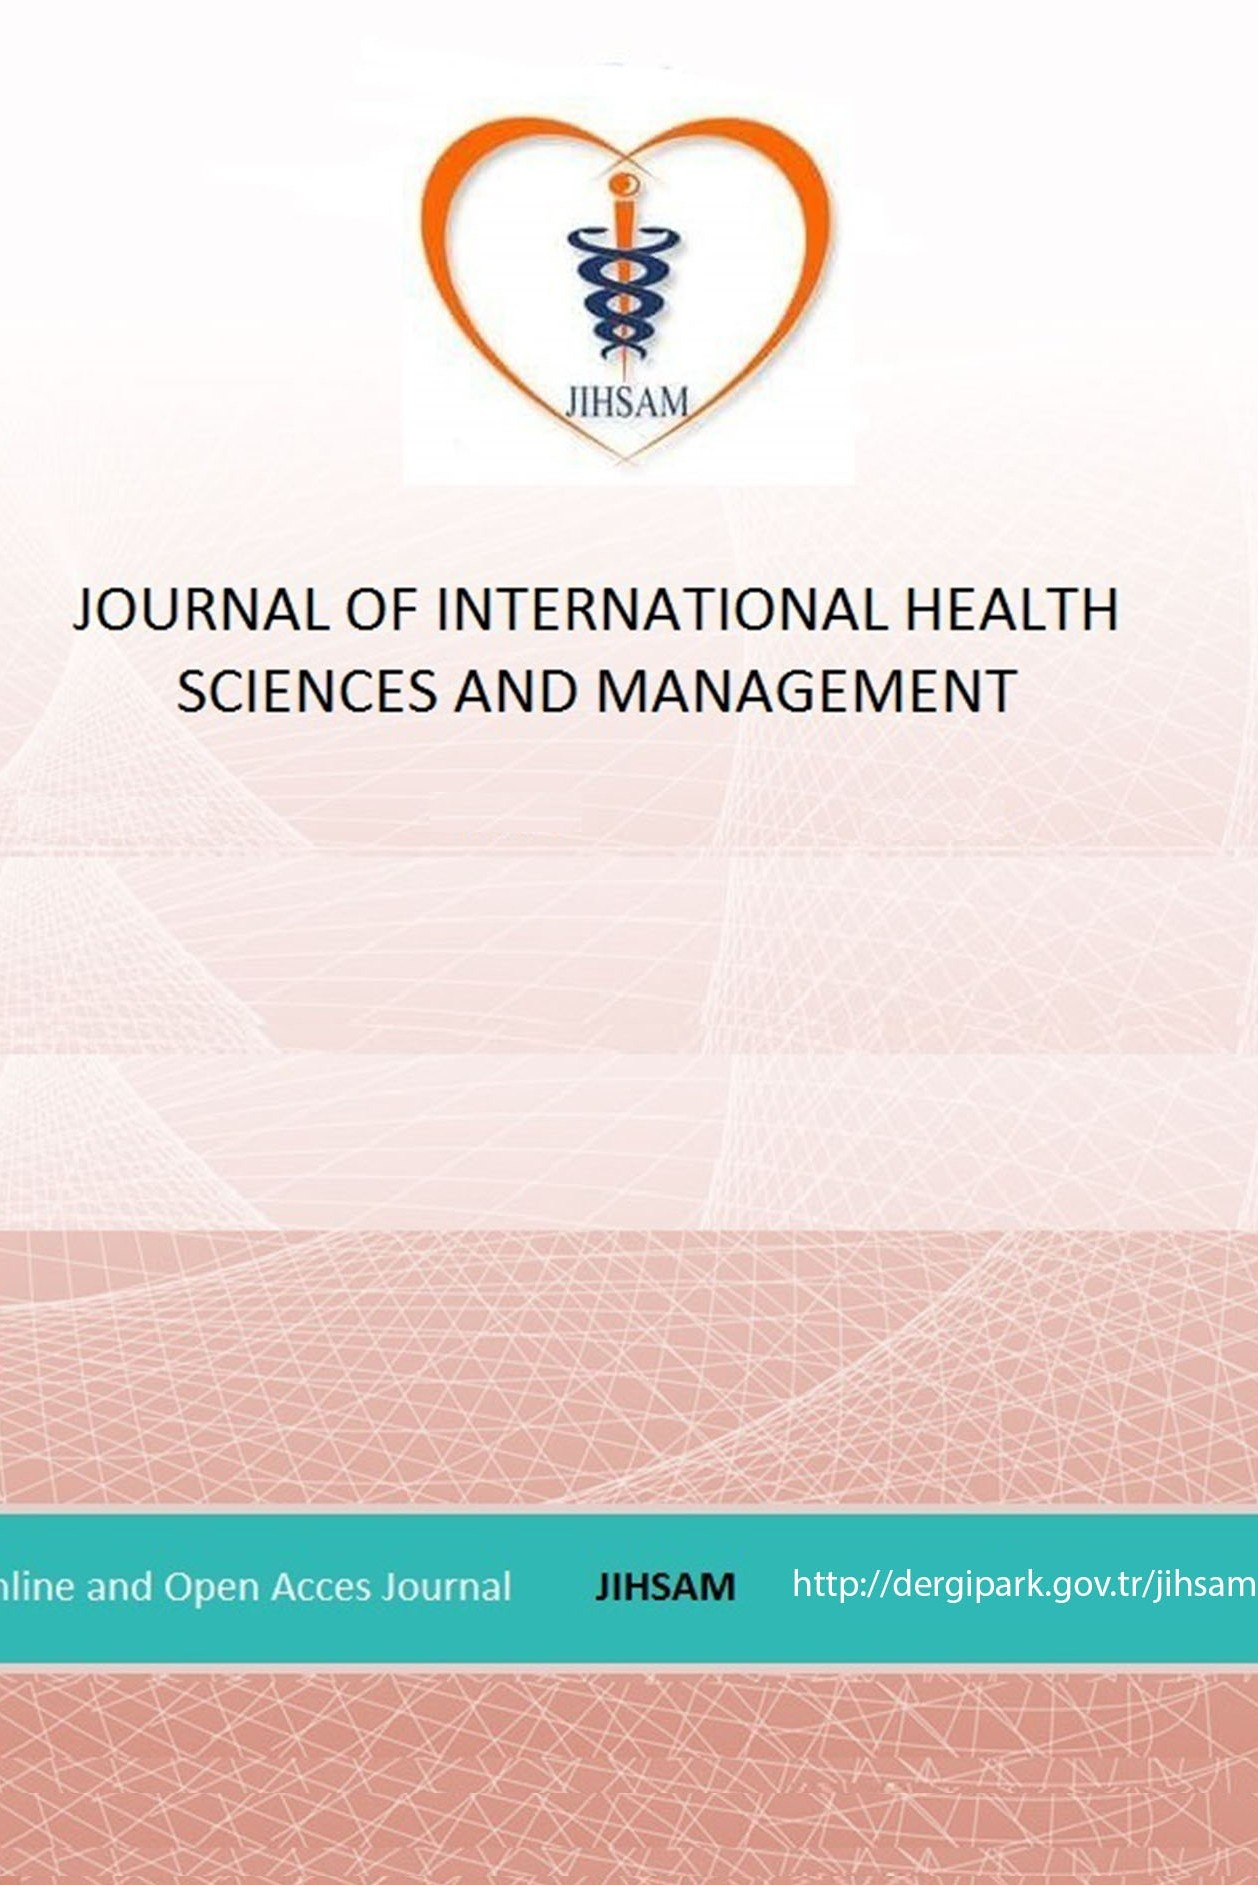 Journal of International Health Sciences and Management